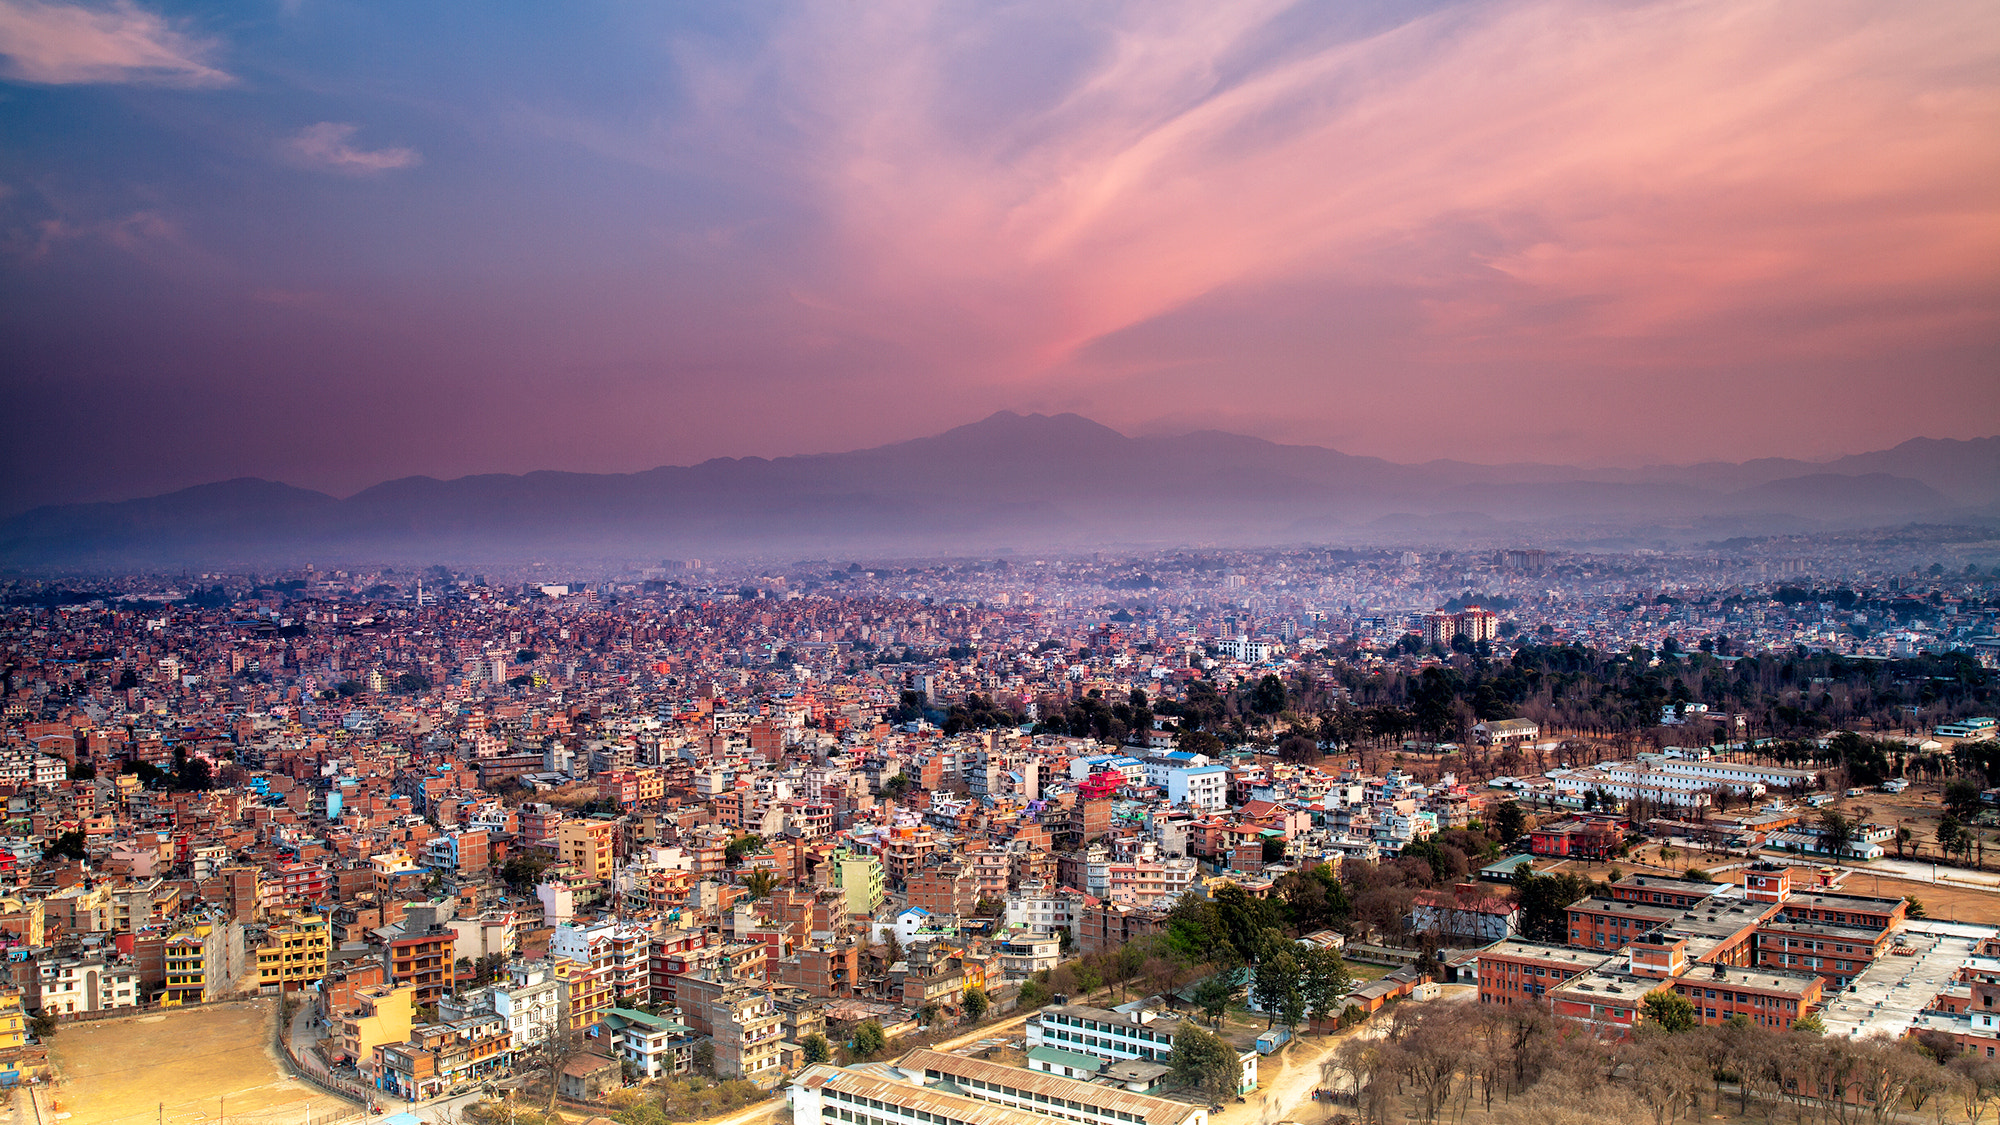 Photograph Kathmandu City by Helminadia Ranford on 500px